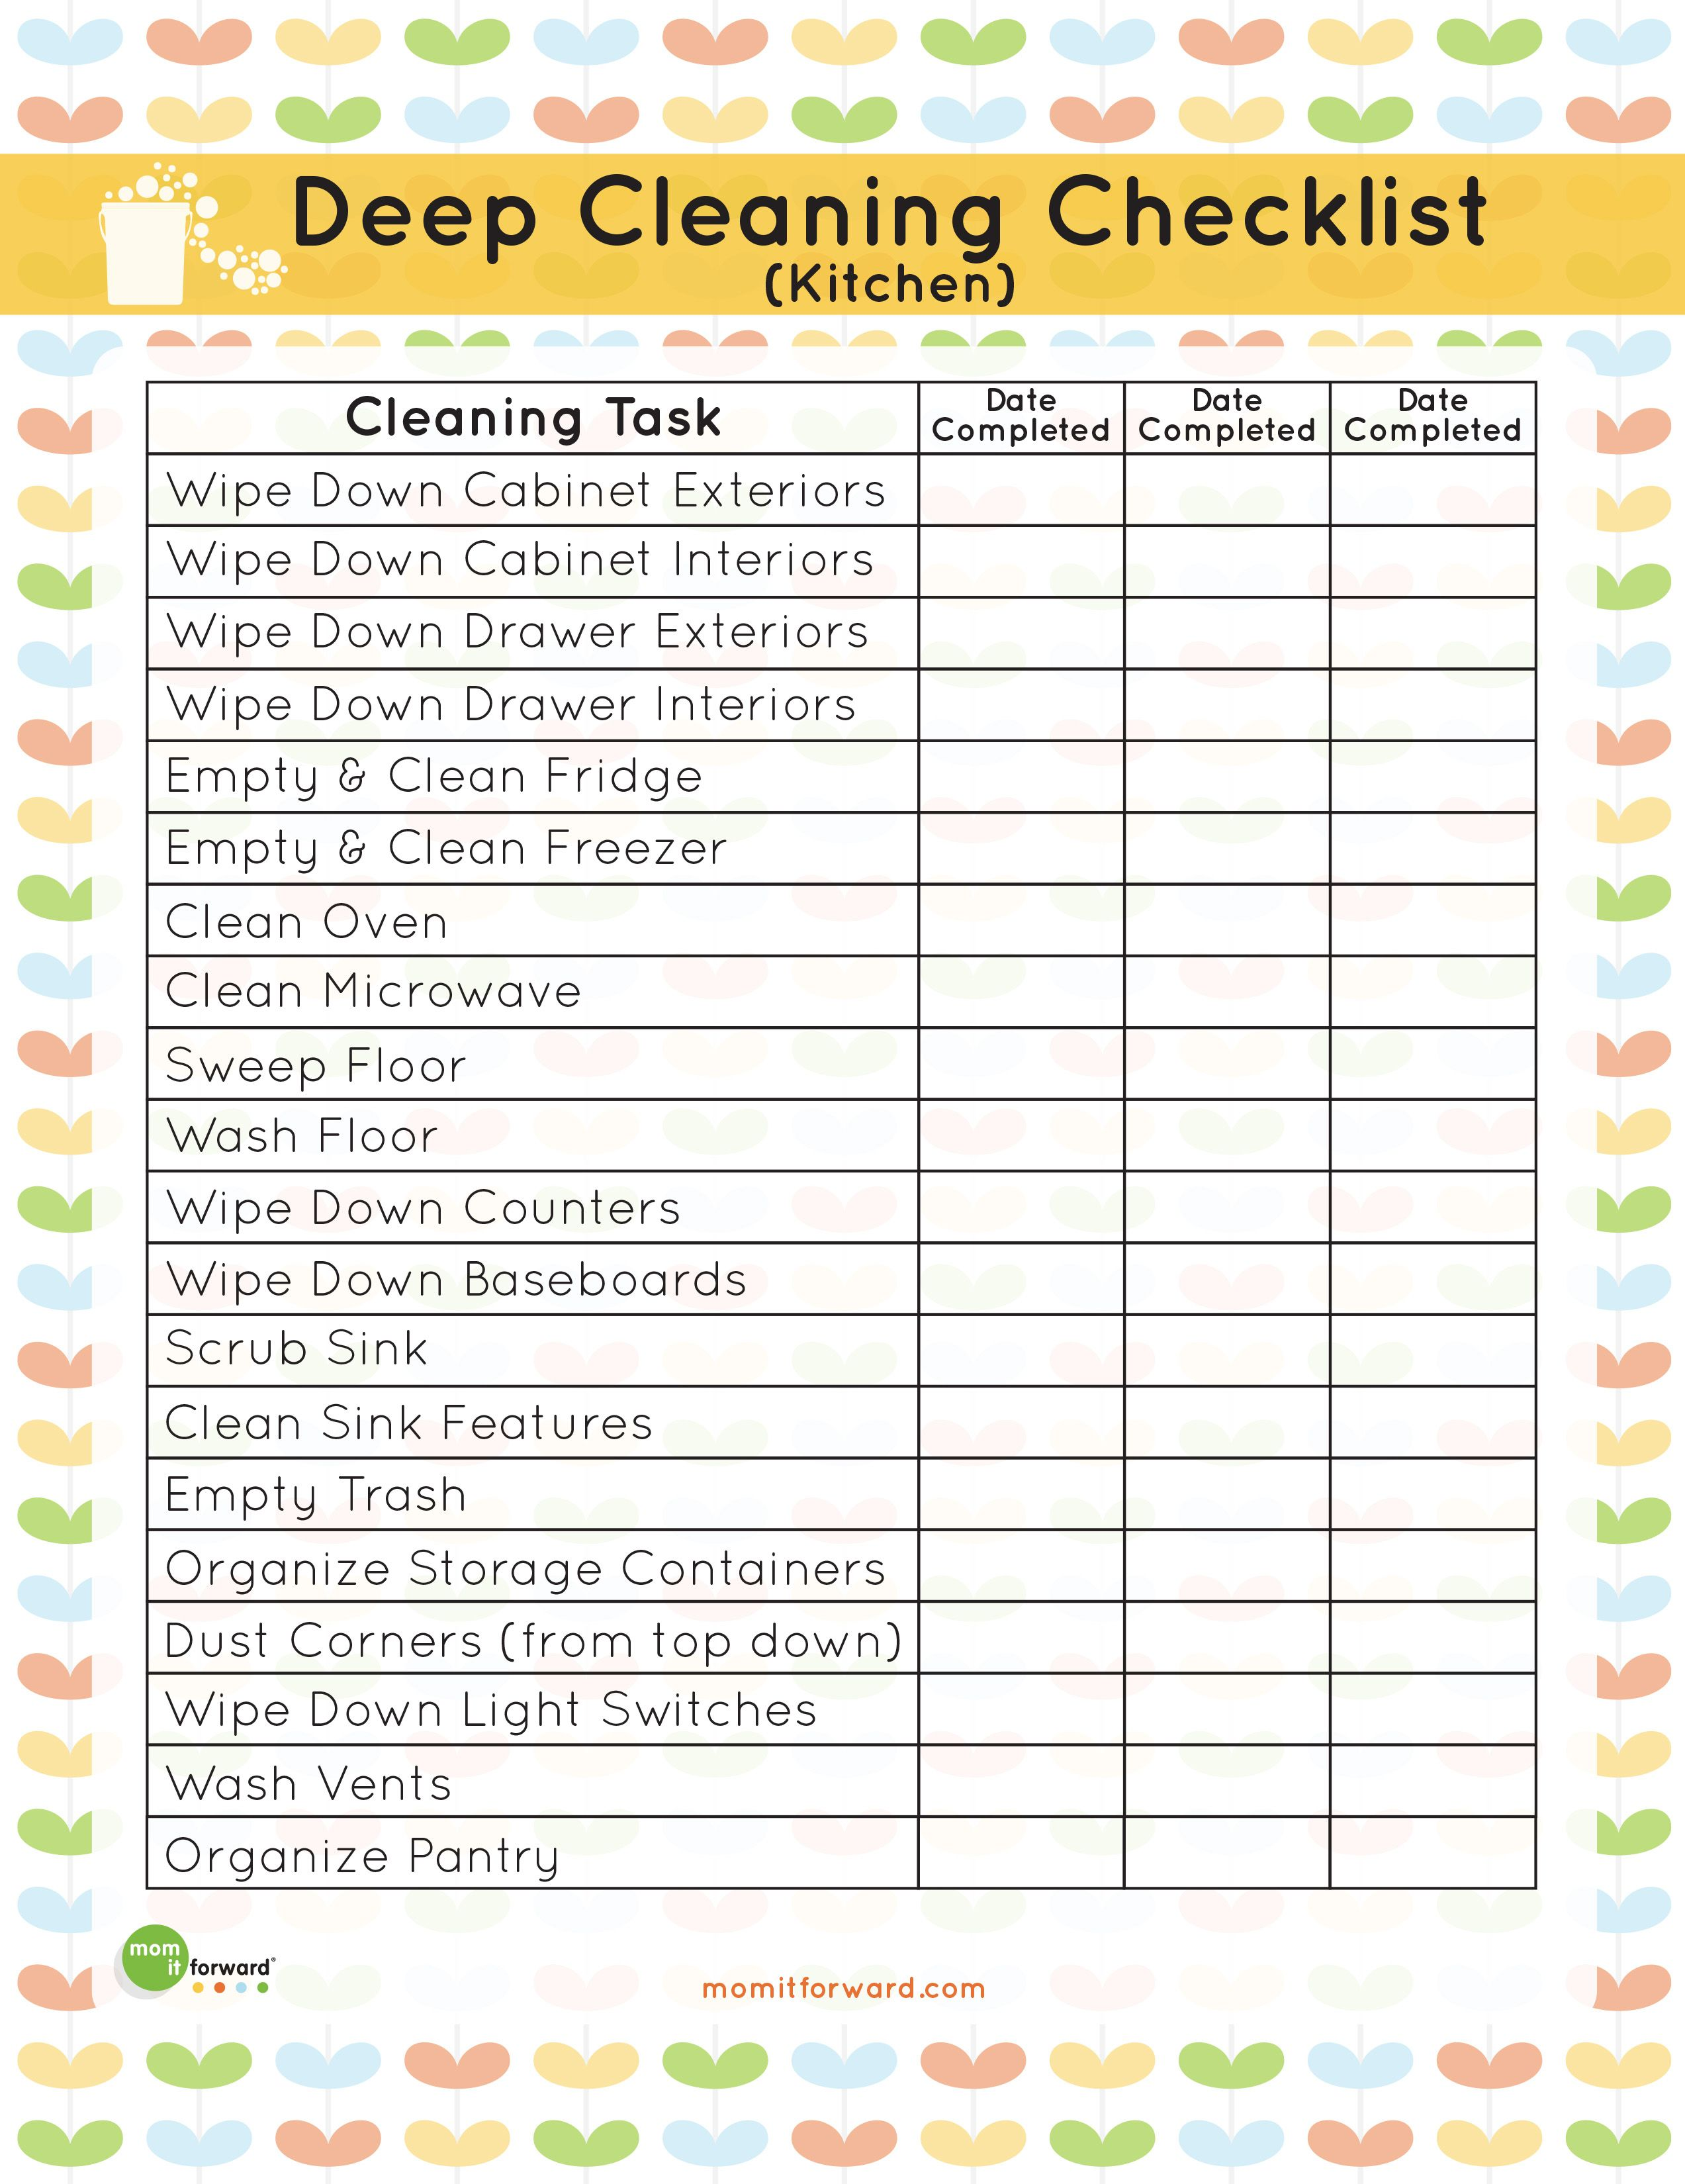 Printable: Kitchen Cleaning Checklist | CLEANING & ORGANIZATION ...